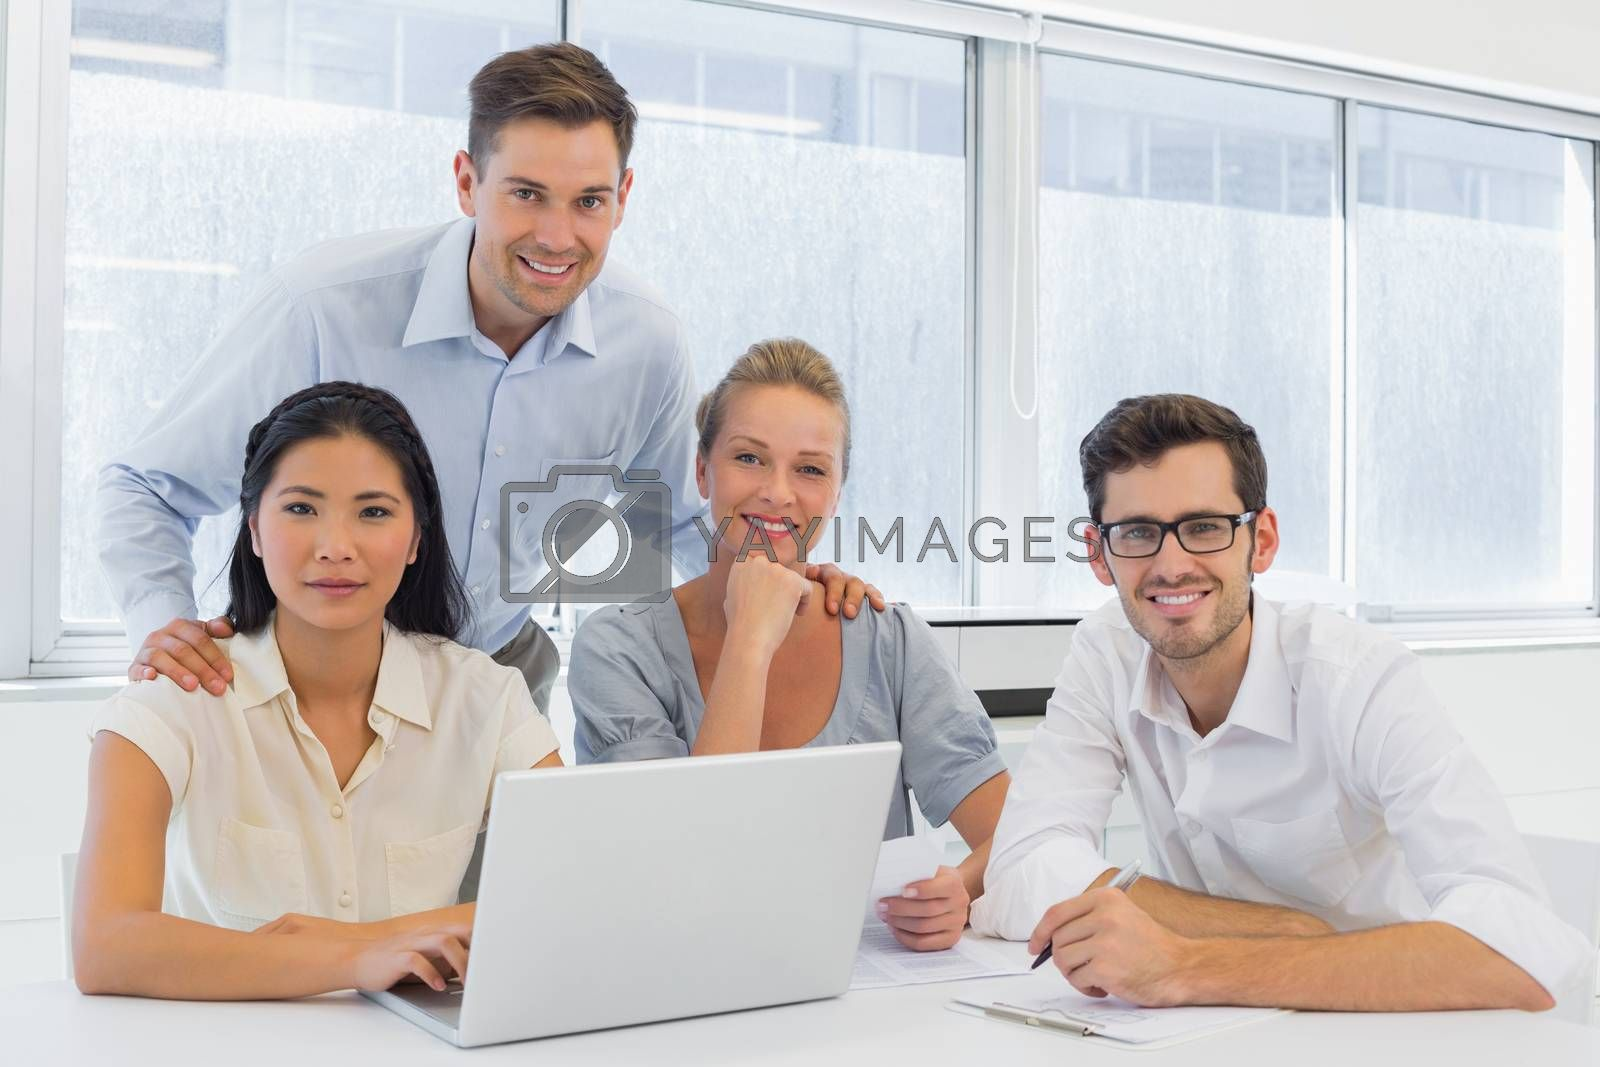 Royalty free image of Casual business team working together at desk using laptop by Wavebreakmedia